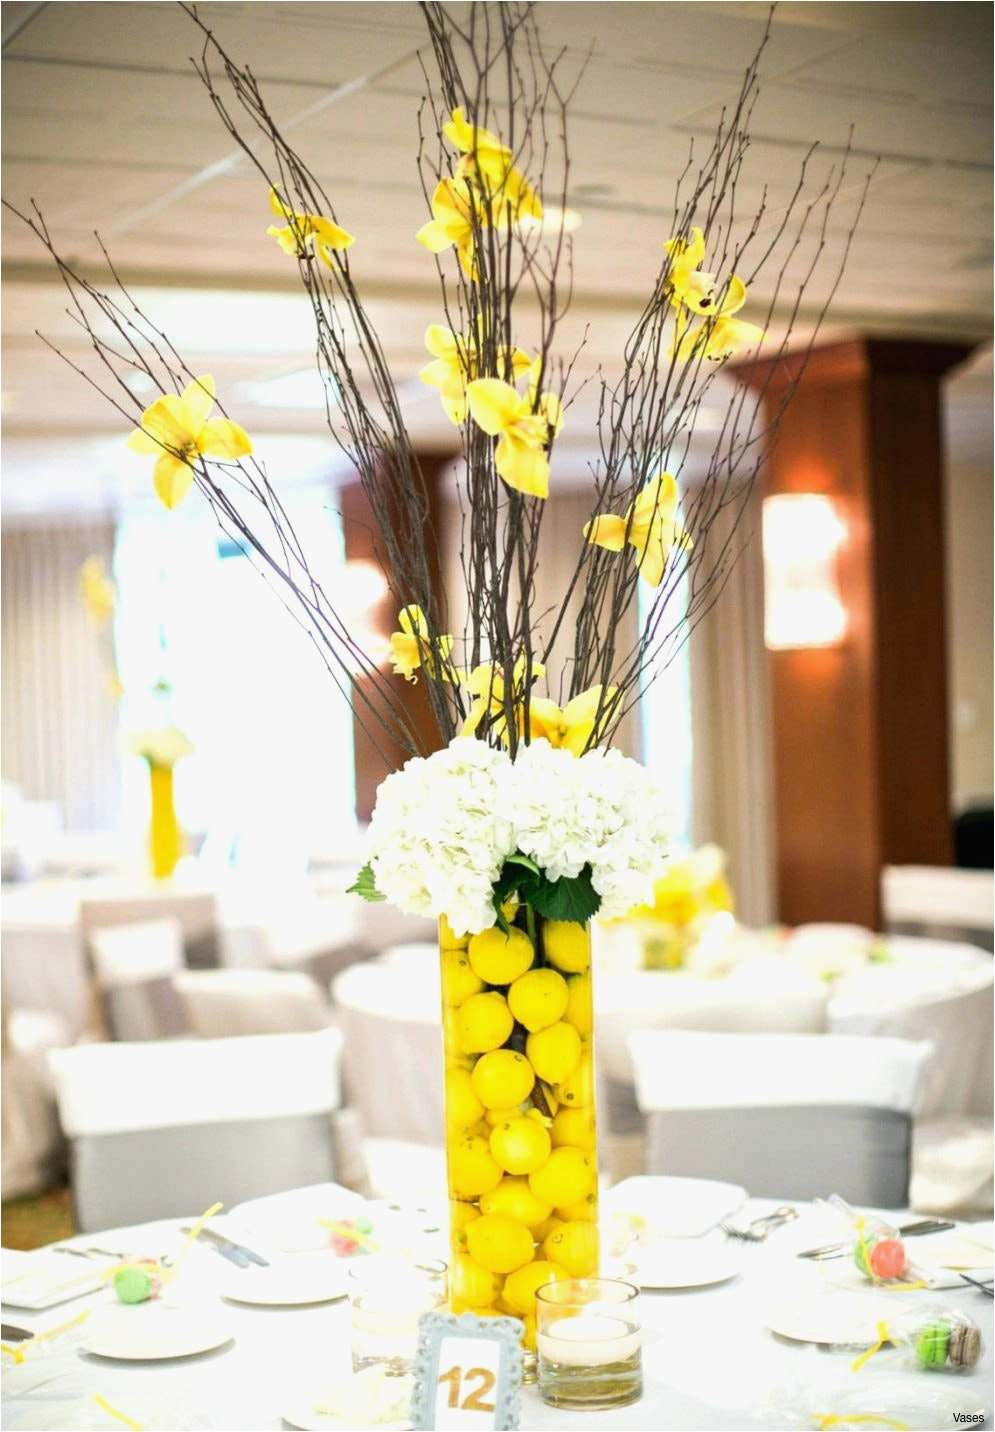 Trumpet Vase Decoration Ideas Of Wedding Table Decoration Ideas Review Cheap Wedding Table Decoration for Wedding Table Decoration Ideas Elegant Table Decorations for Weddings Unique Diy Home Decor Vaseh Vases Fresh